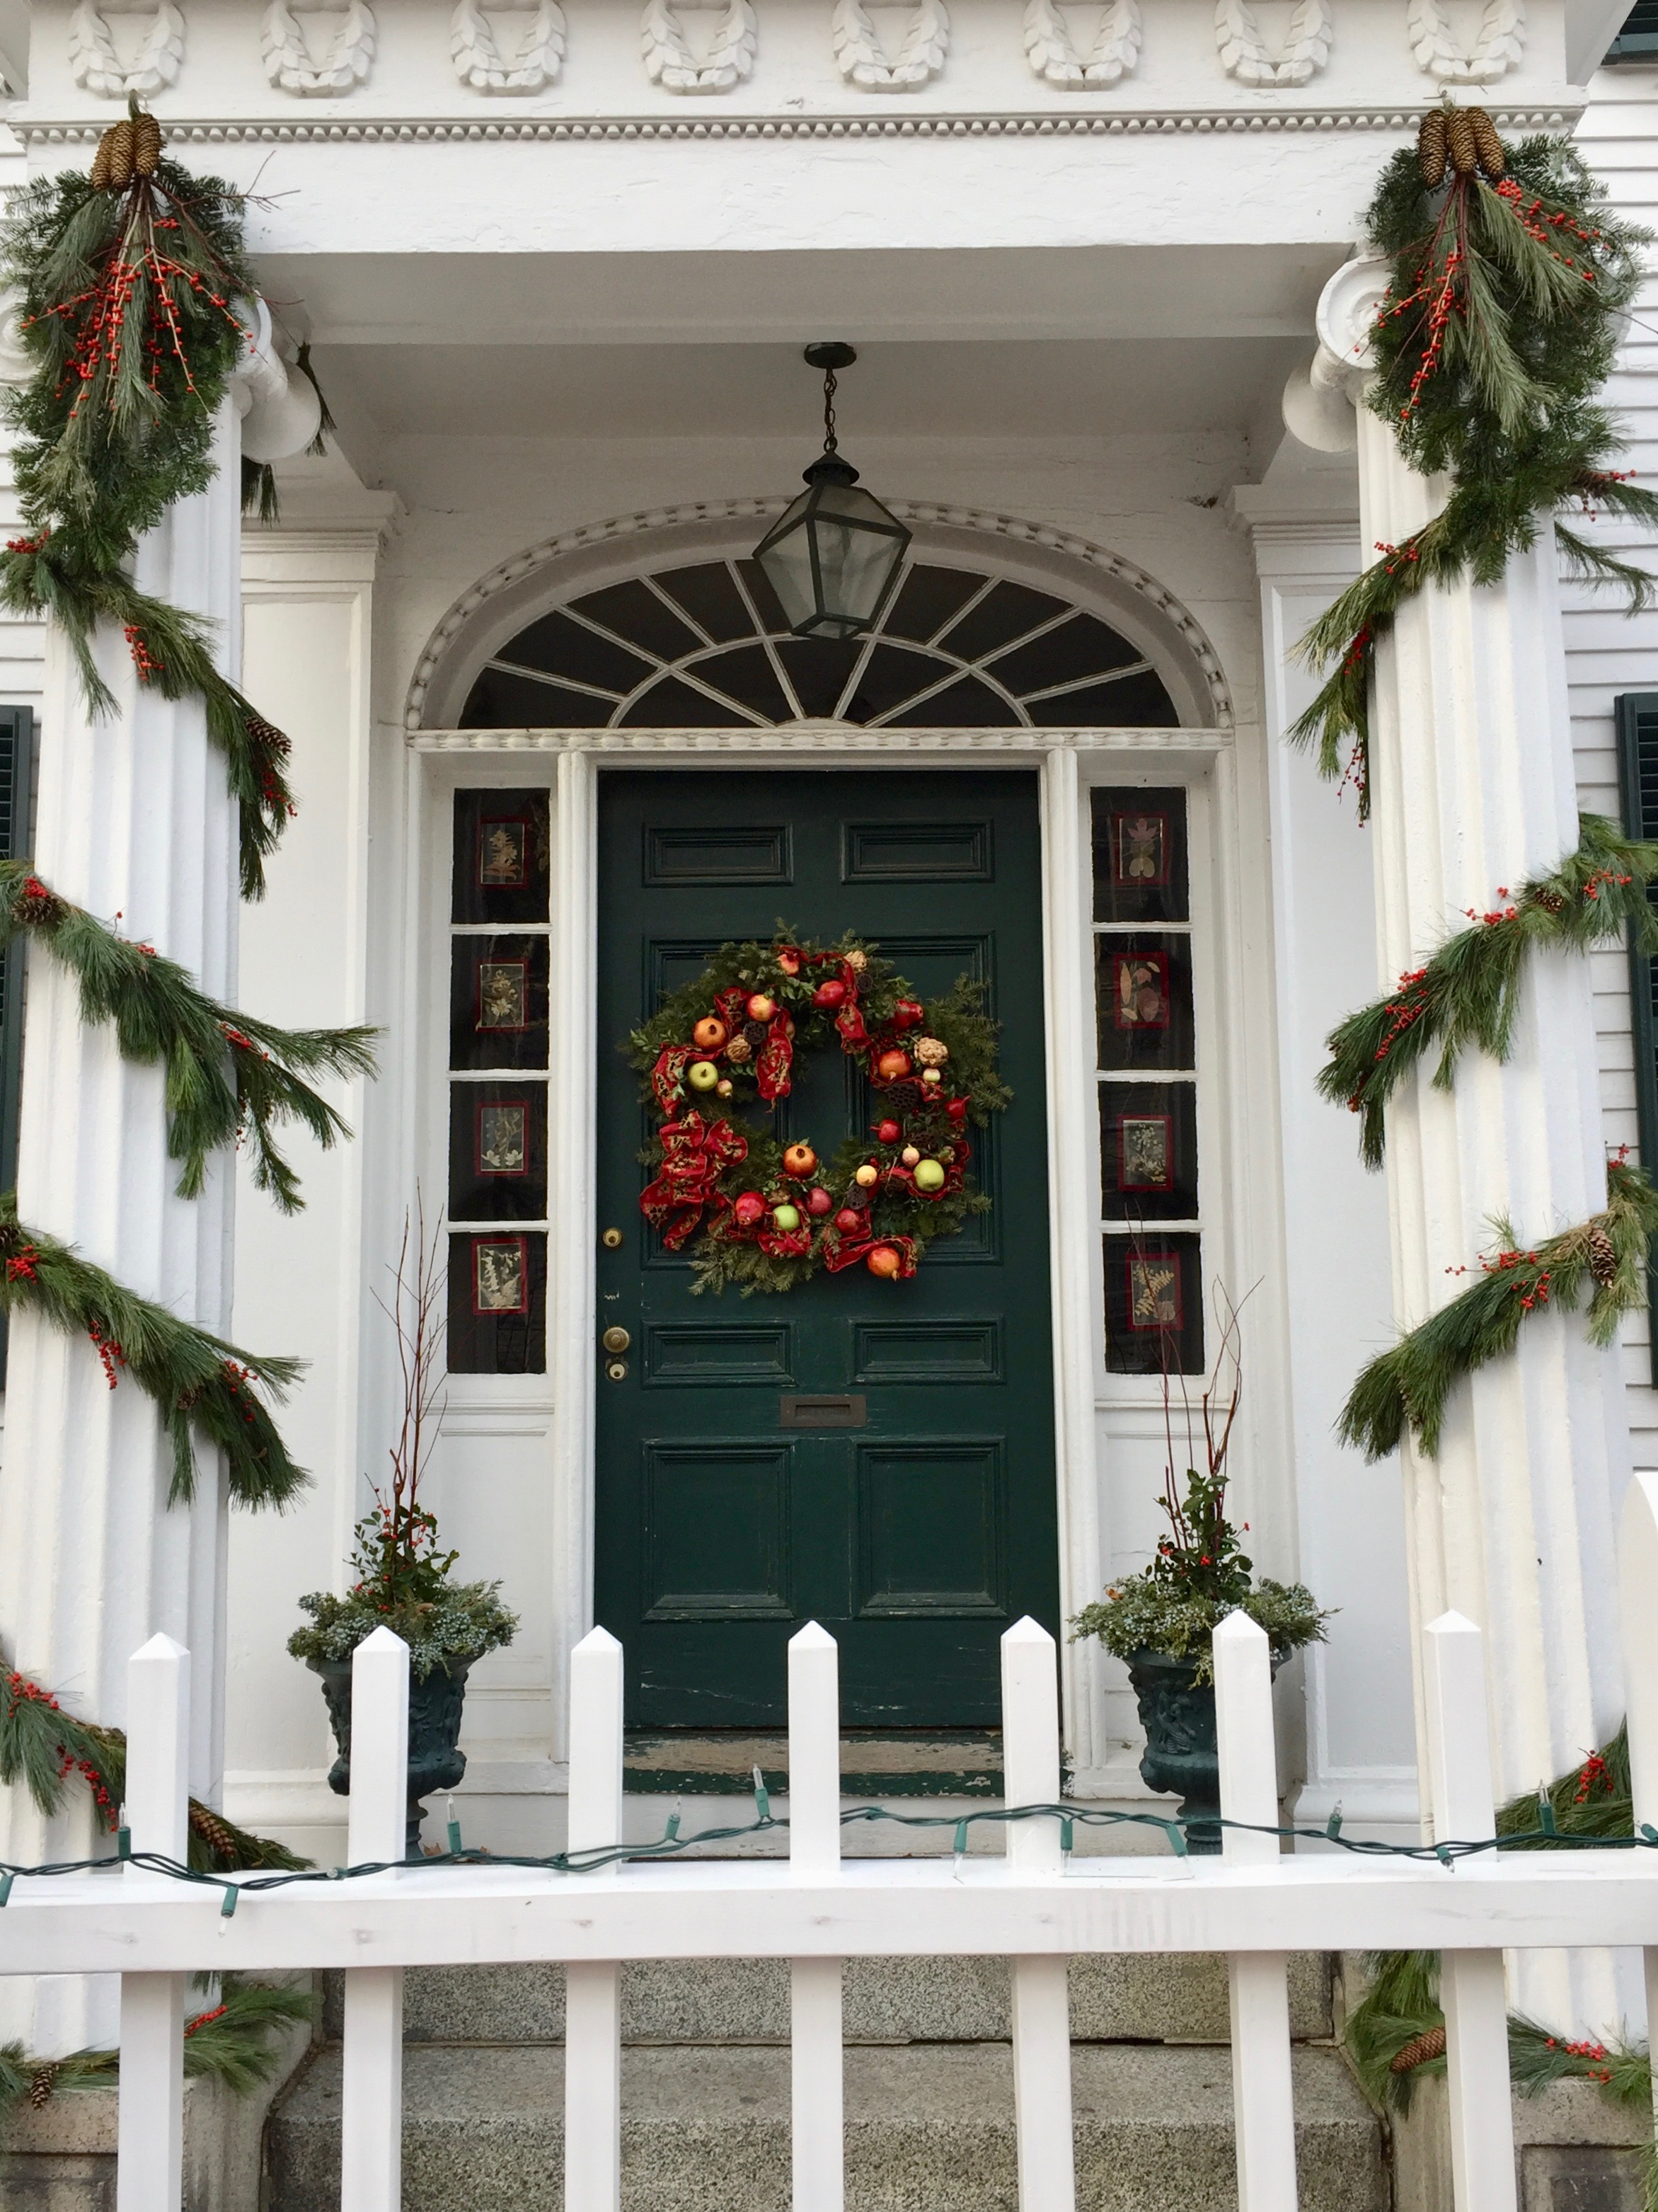 Christmas Wreath ideas from New England - portsmouth nh 7.jpg